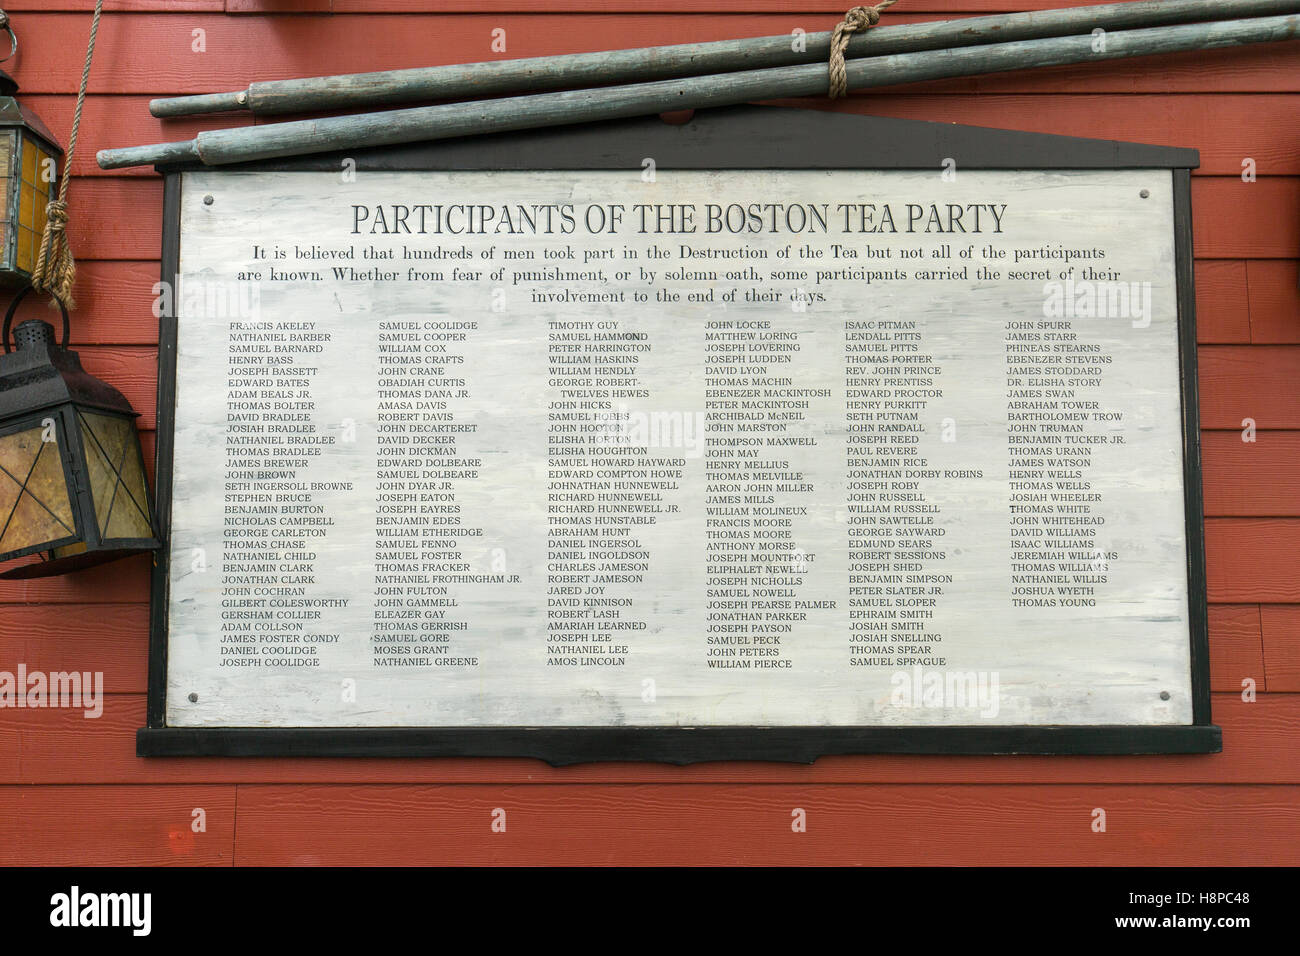 Boston Tea Party Museum. List of Participants of the Boston Tea Party - Stock Image